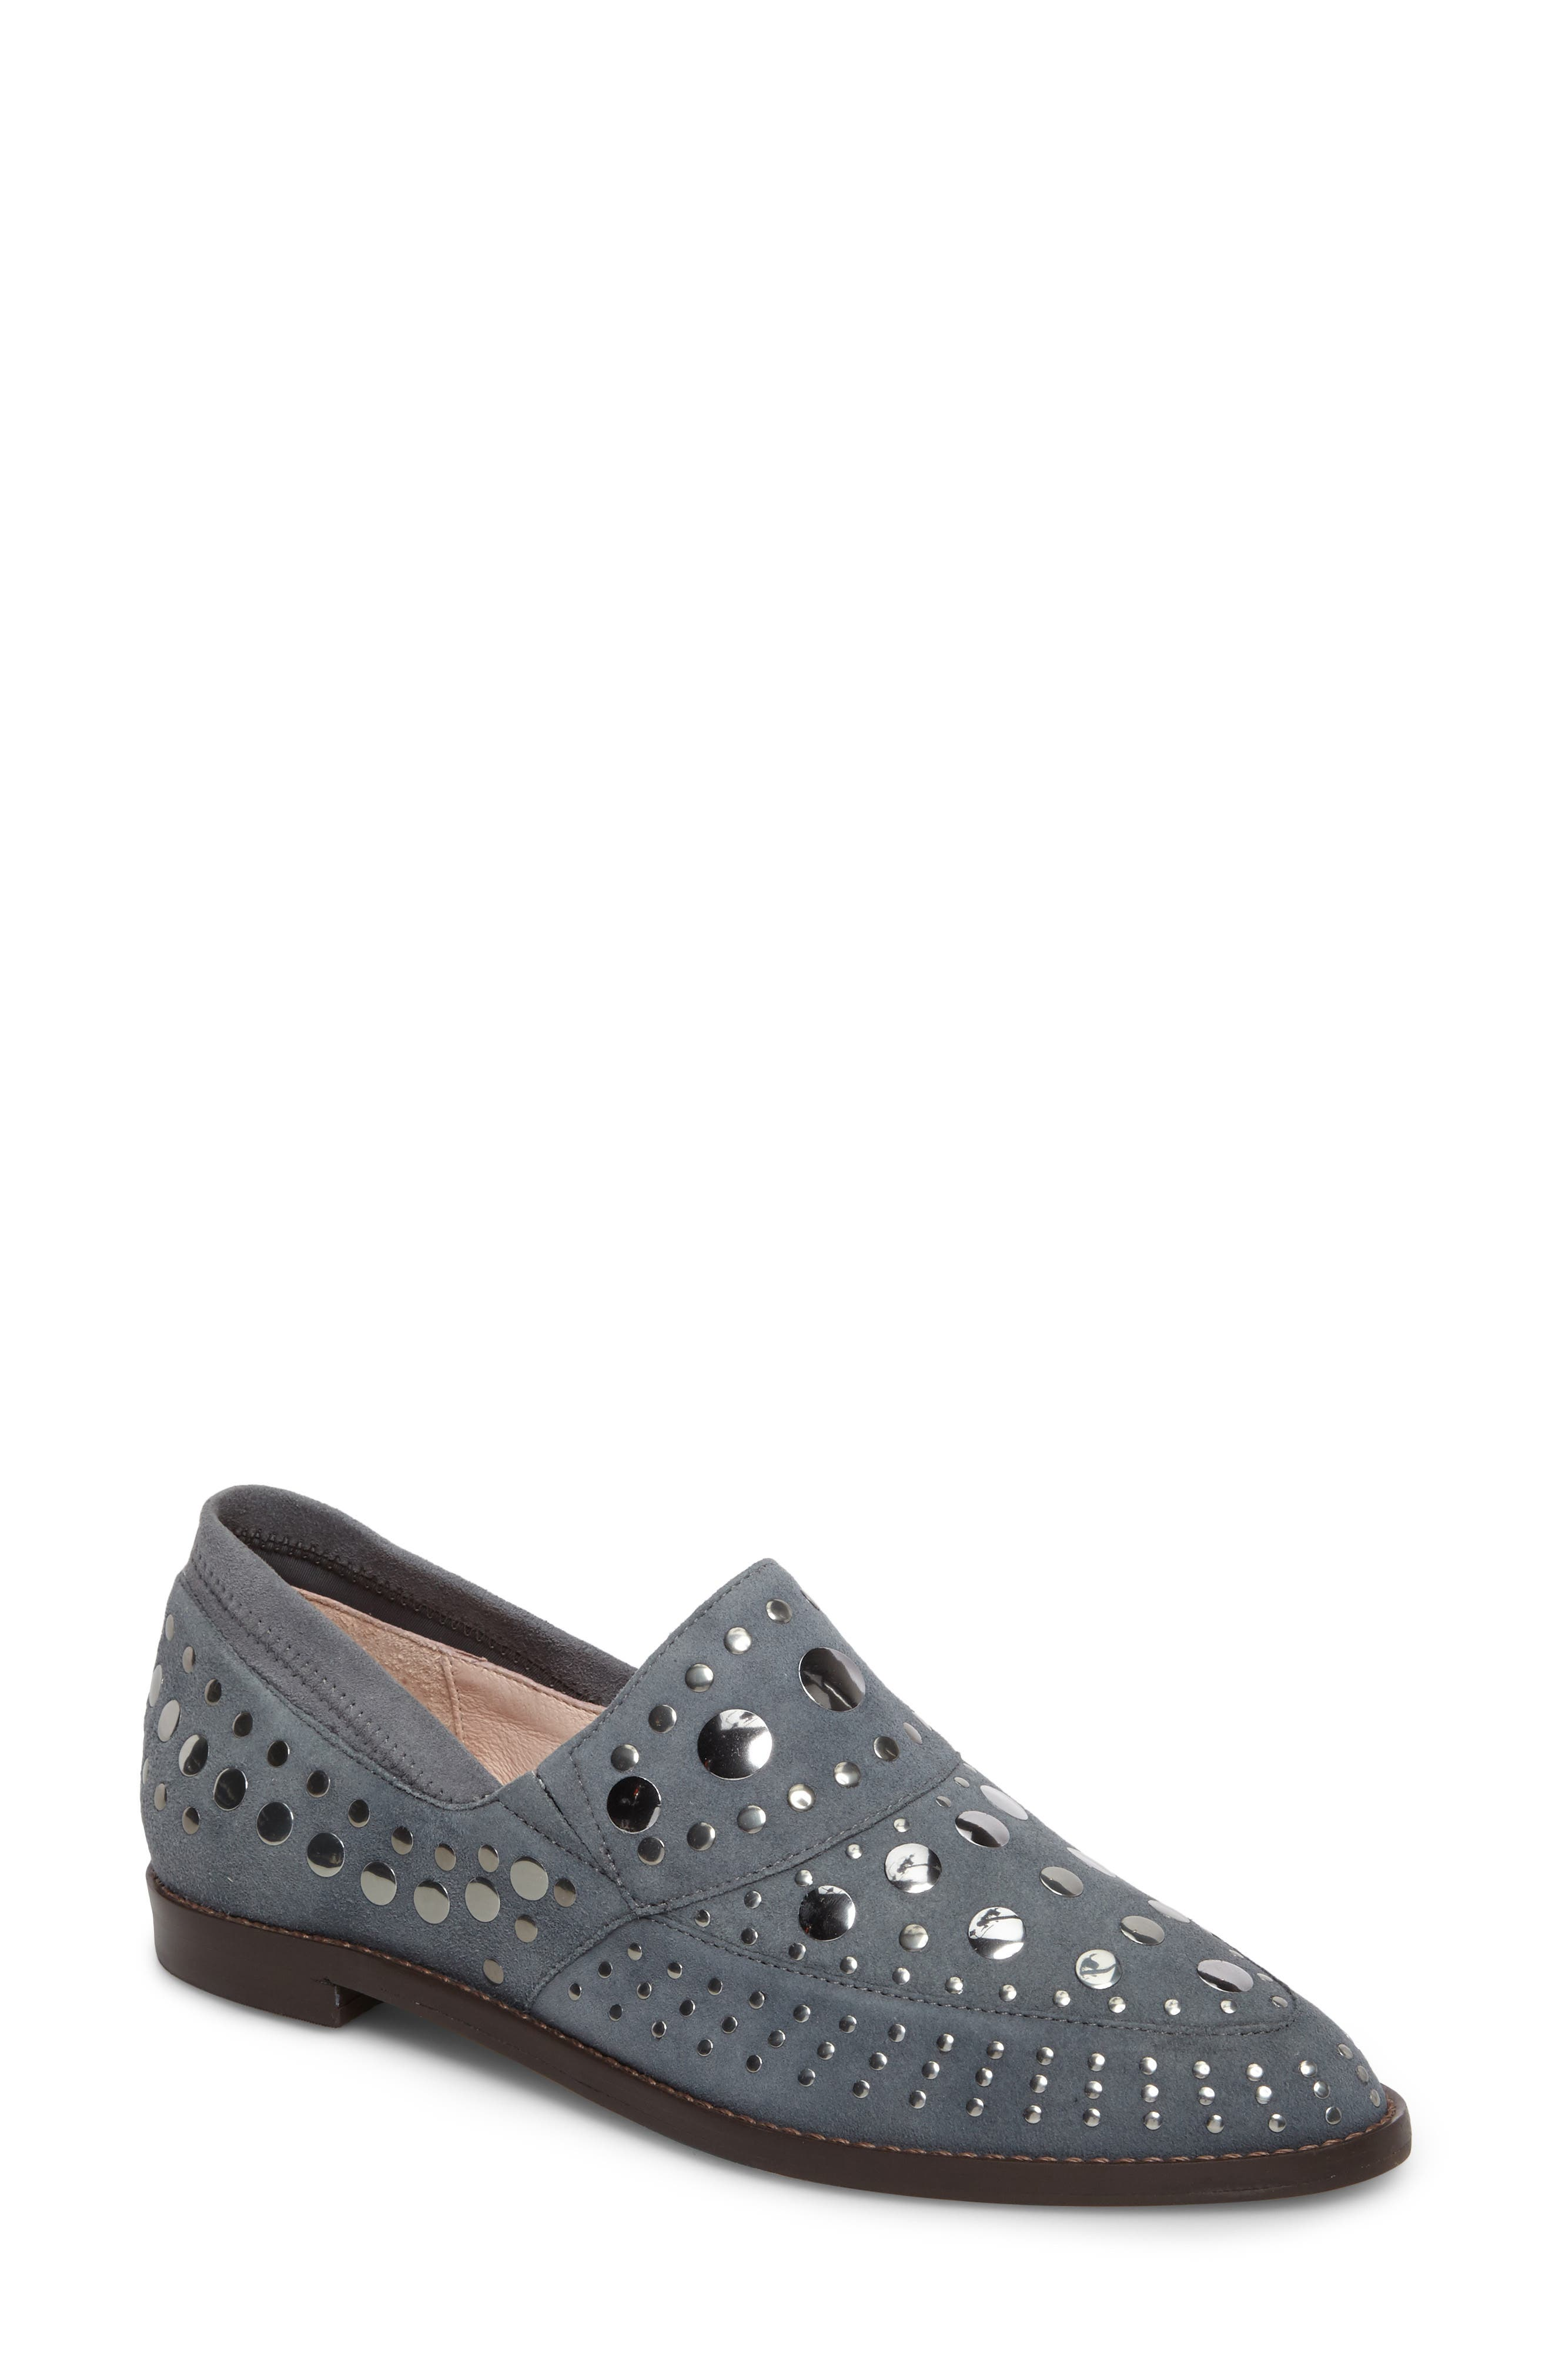 Main Image - Cecelia New York Ping Studded Loafer (Women)